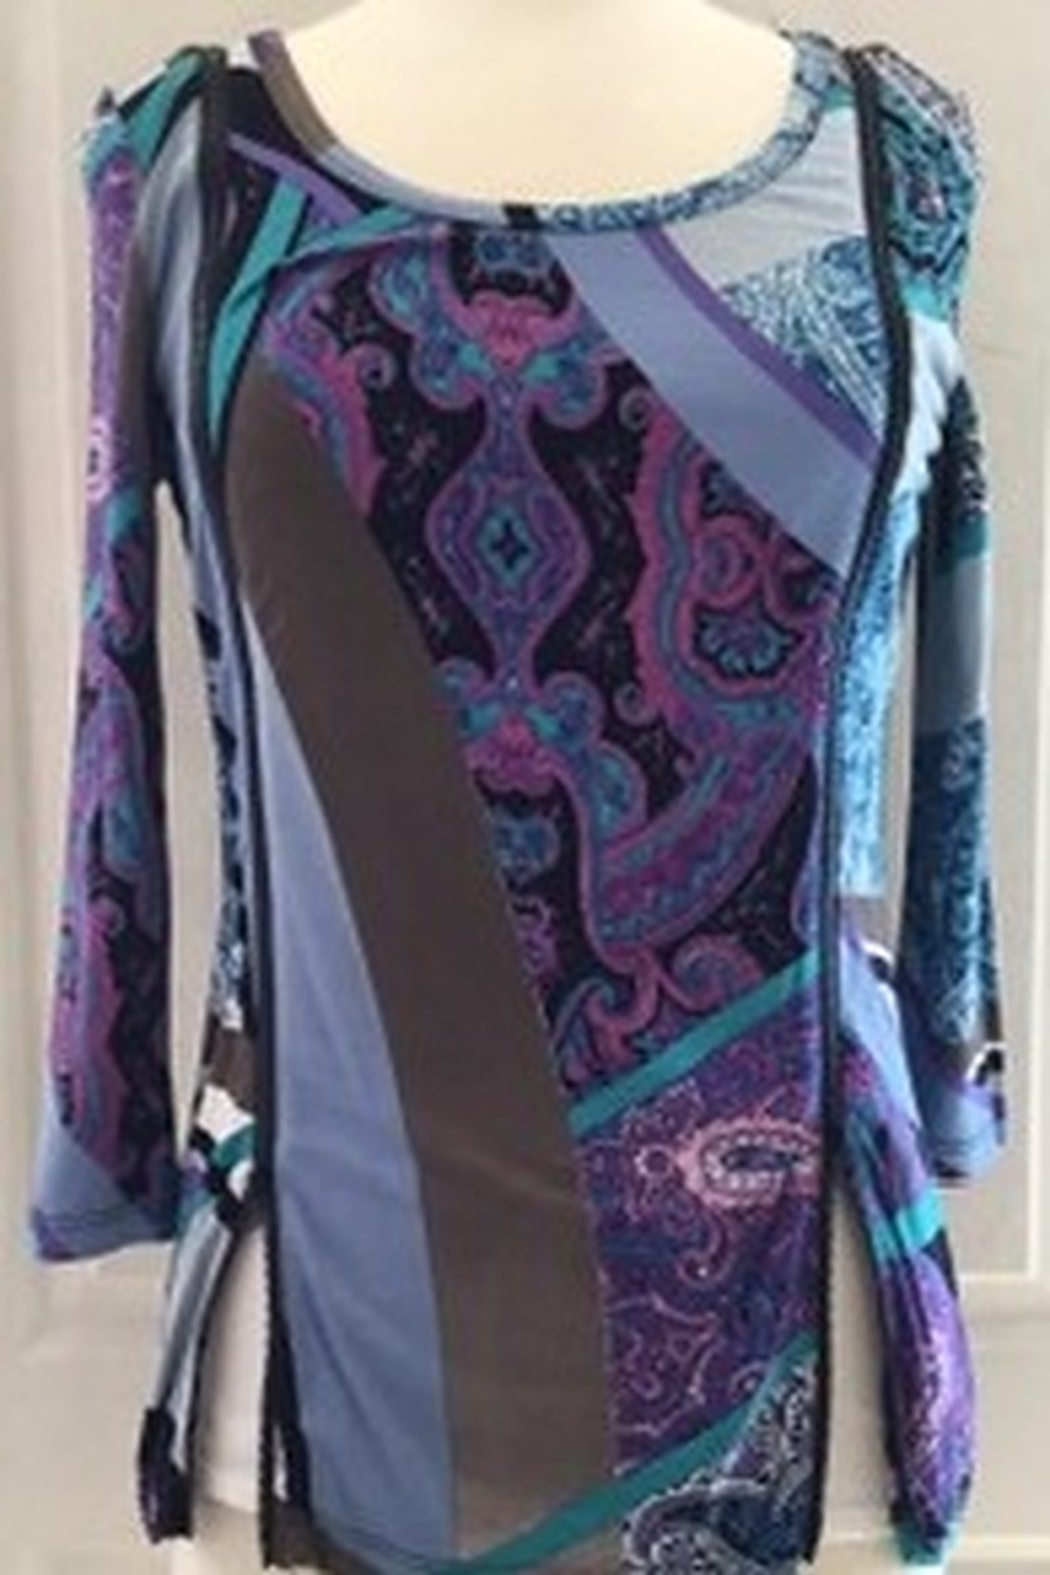 Lynn Ritchie Multi-colored blouse with zippers on side - Main Image